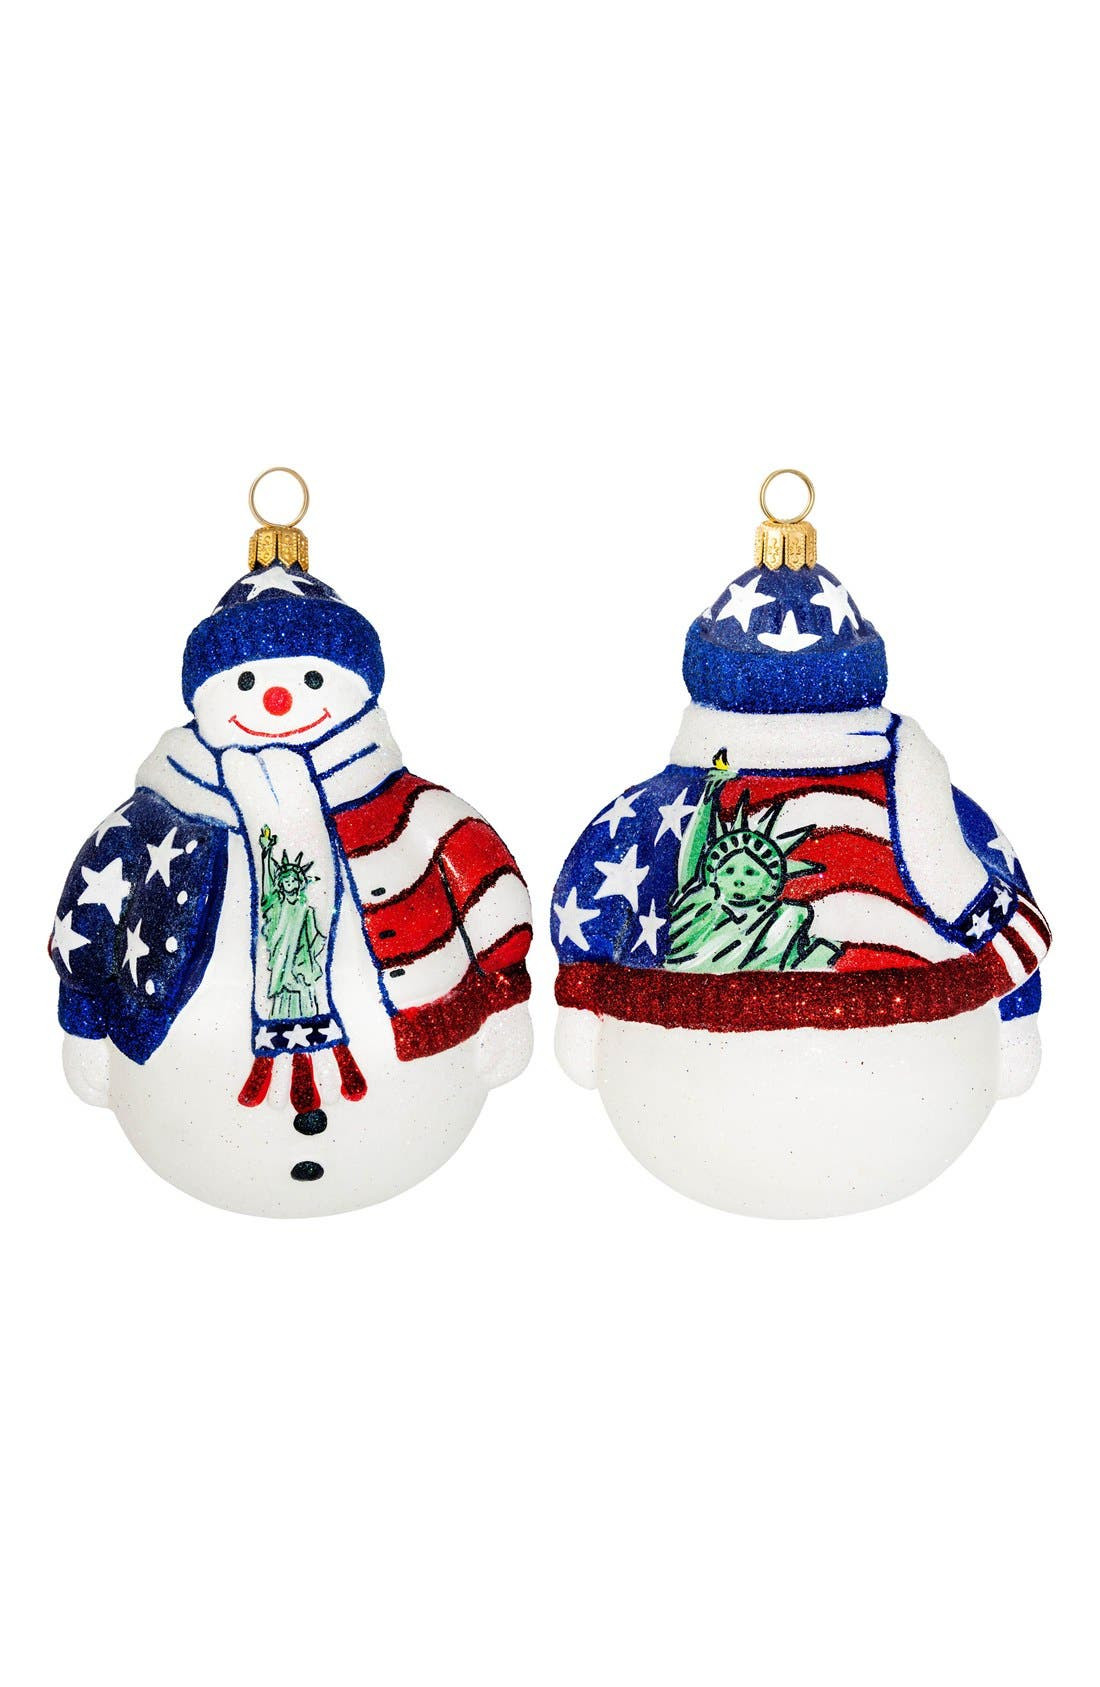 'Land of the Free' Snowman Ornament,                             Main thumbnail 1, color,                             RED/ WHITE/ BLUE